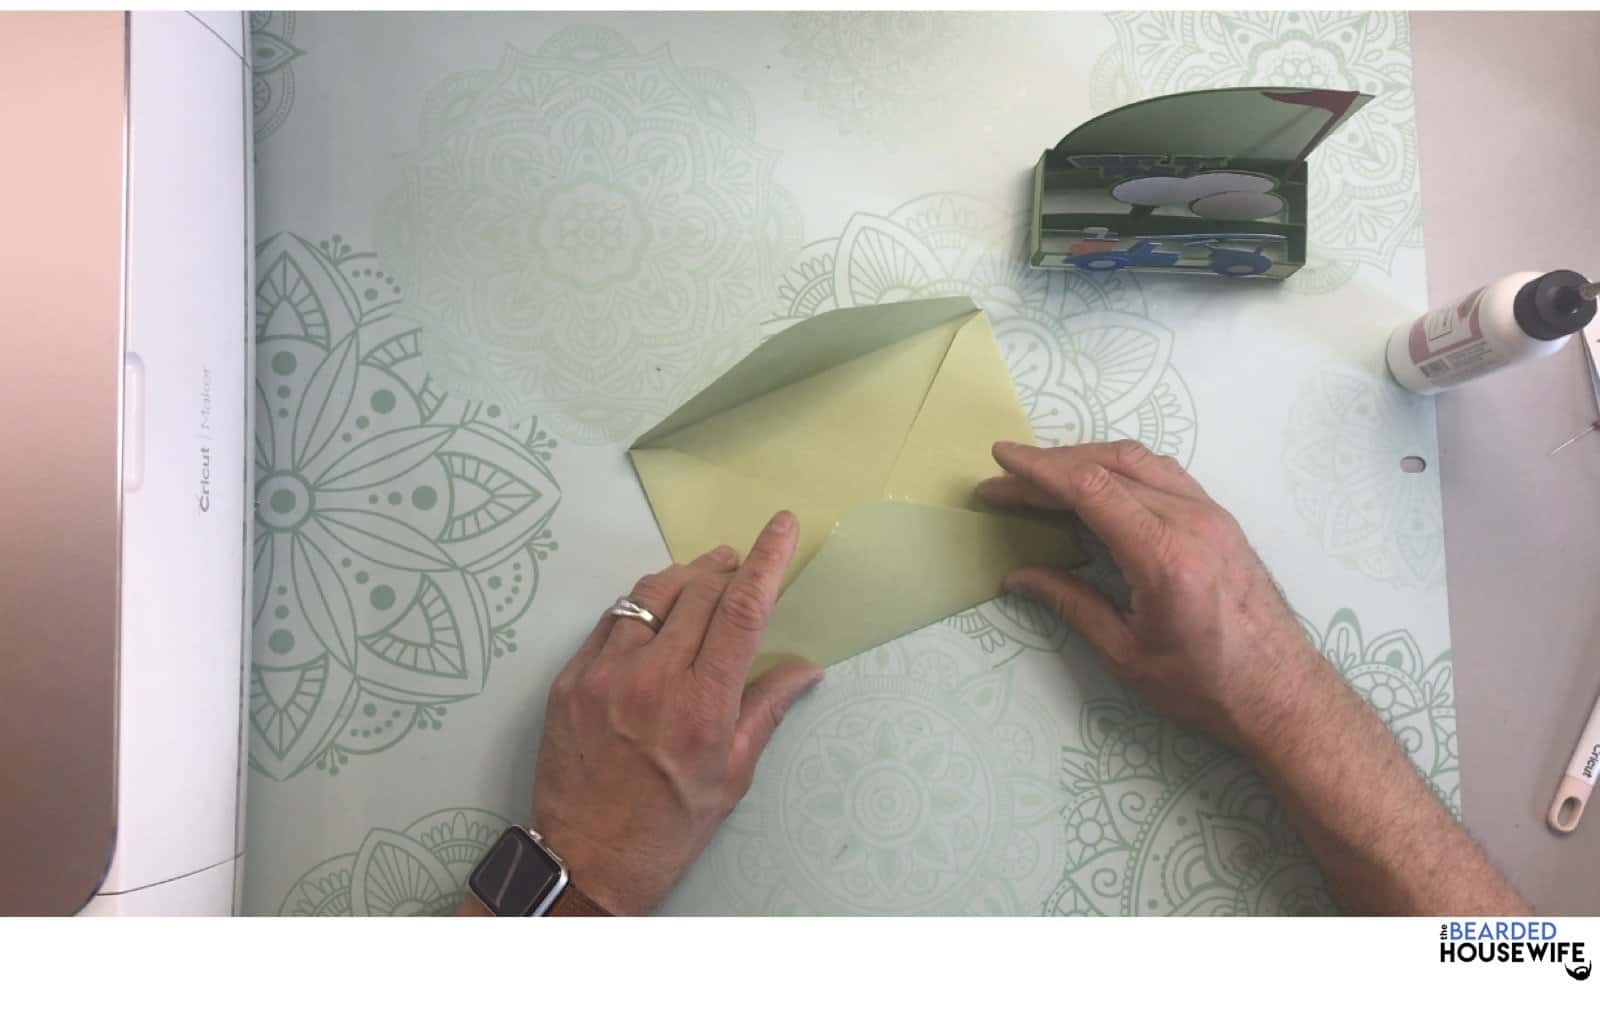 bring the bottom flap up to form the envelope